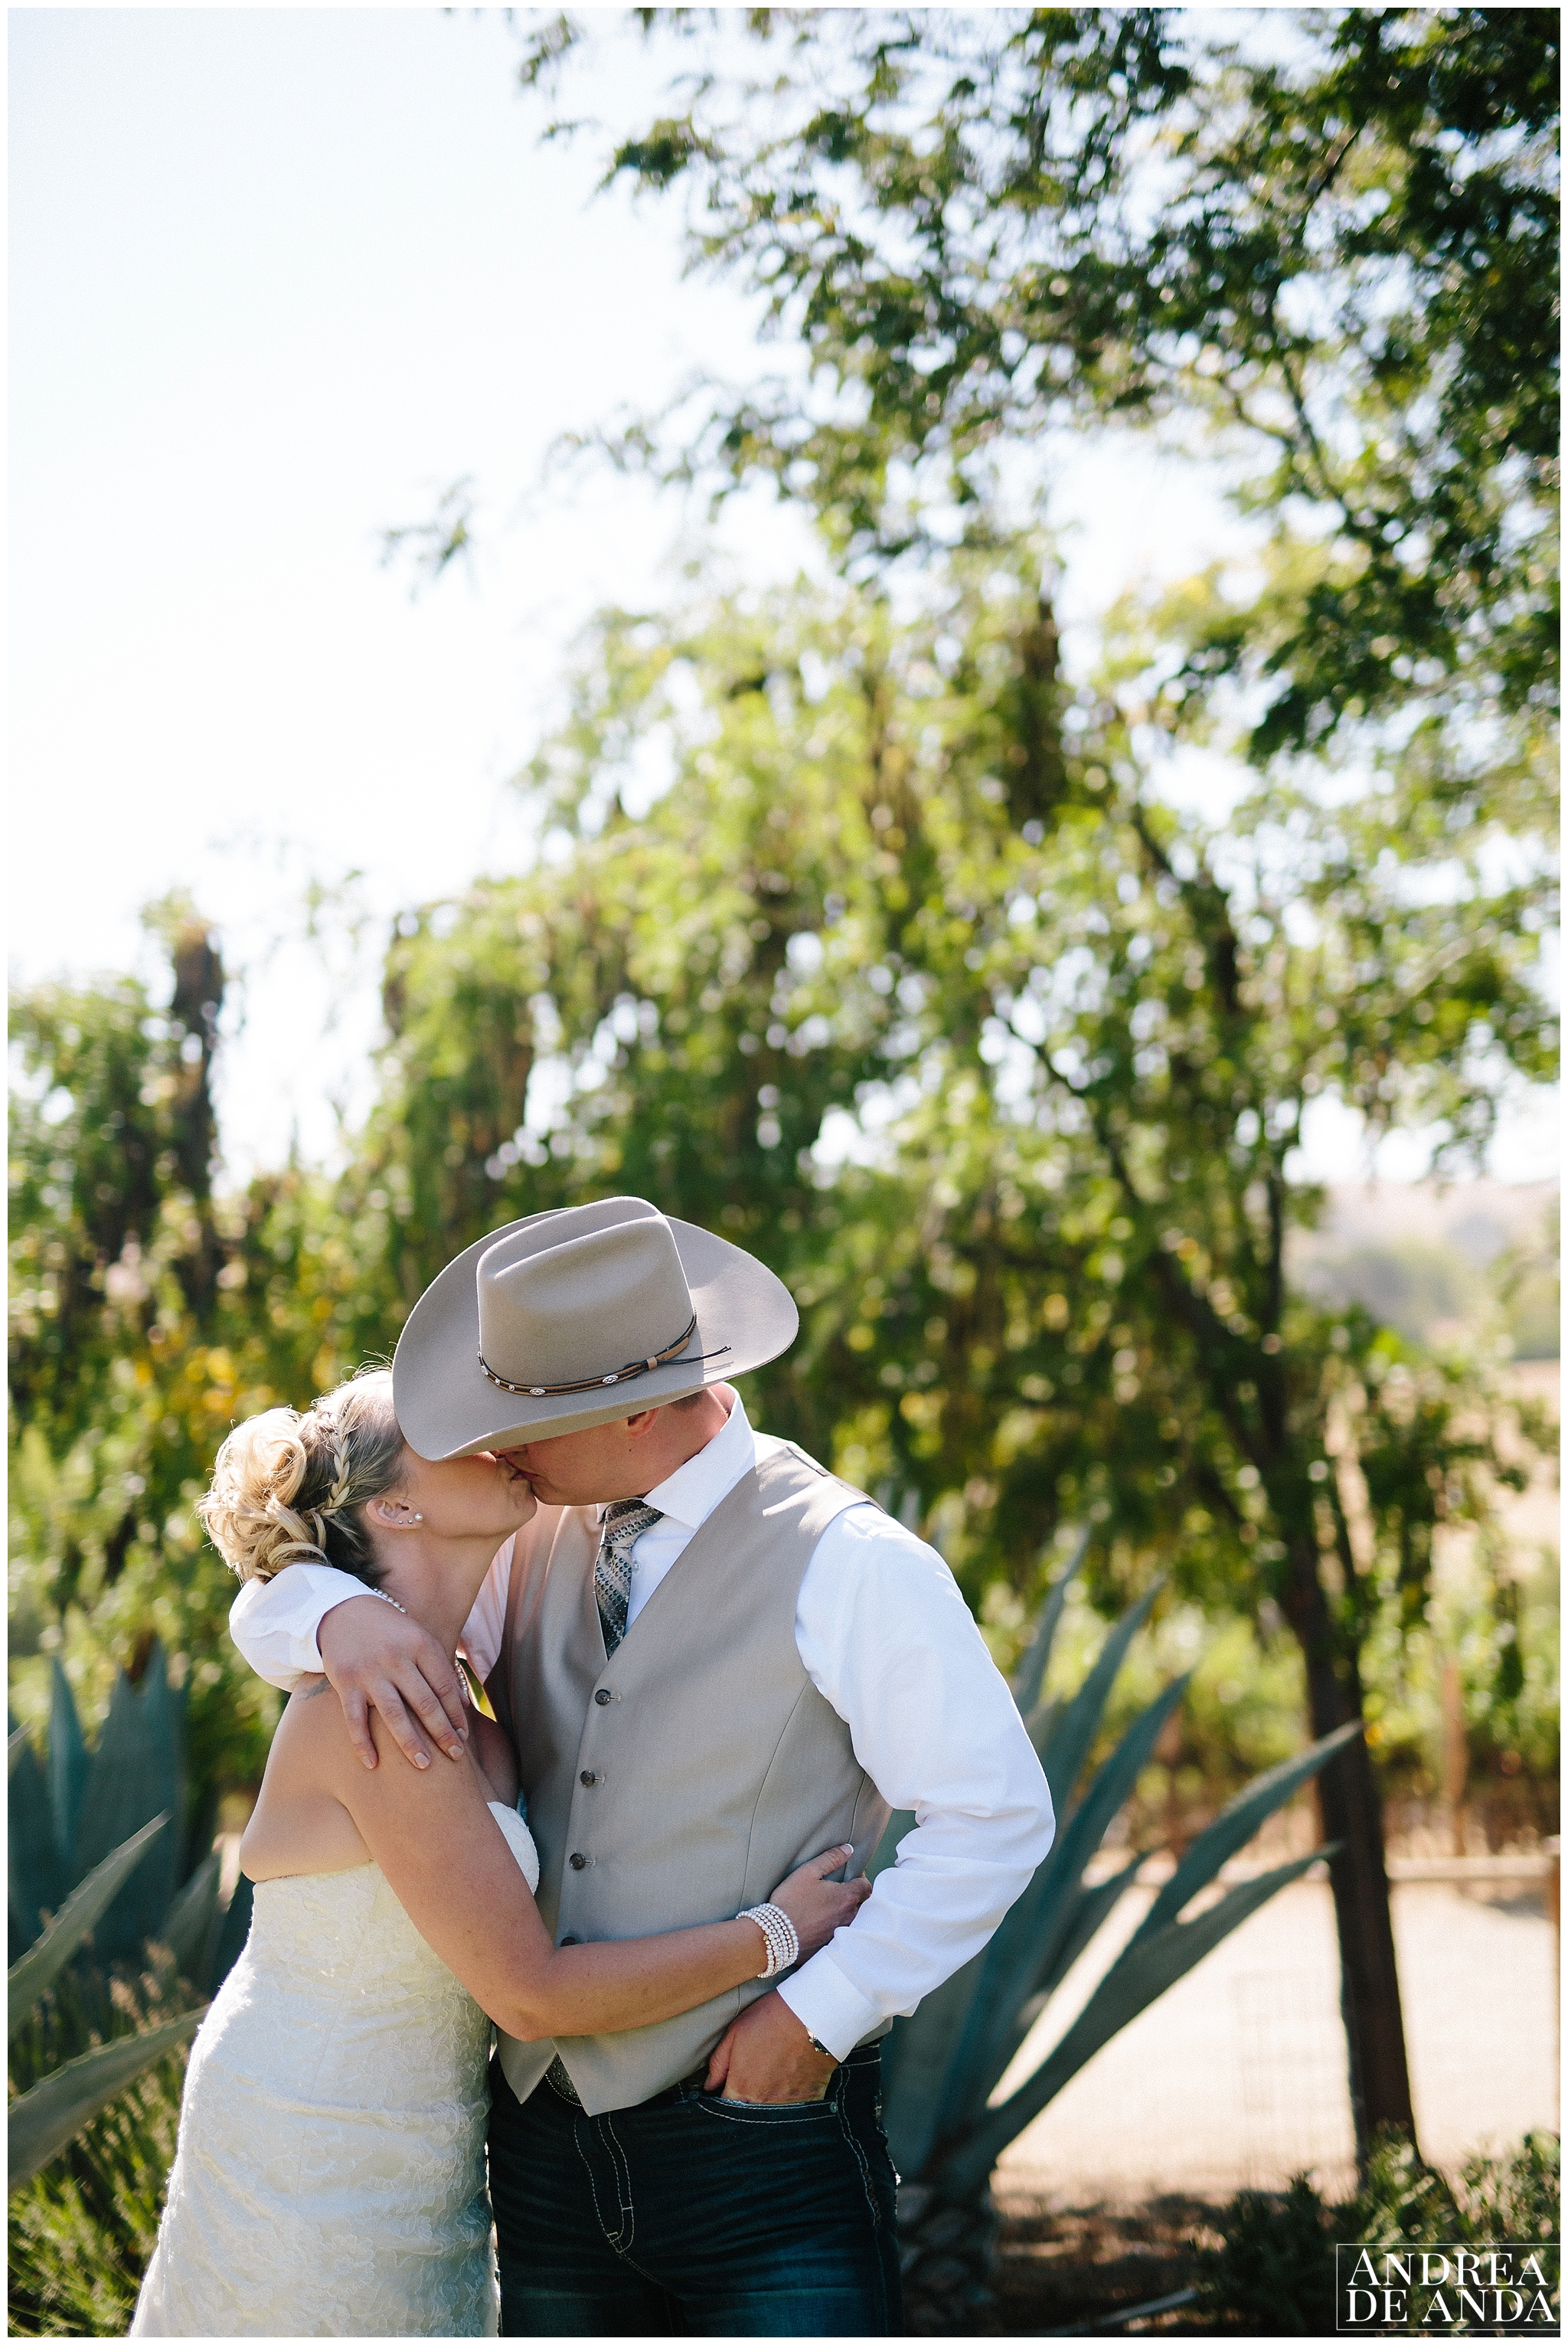 Santa Ynez Valley back yard wedding_Andrea de Anda Photography__0013.jpg